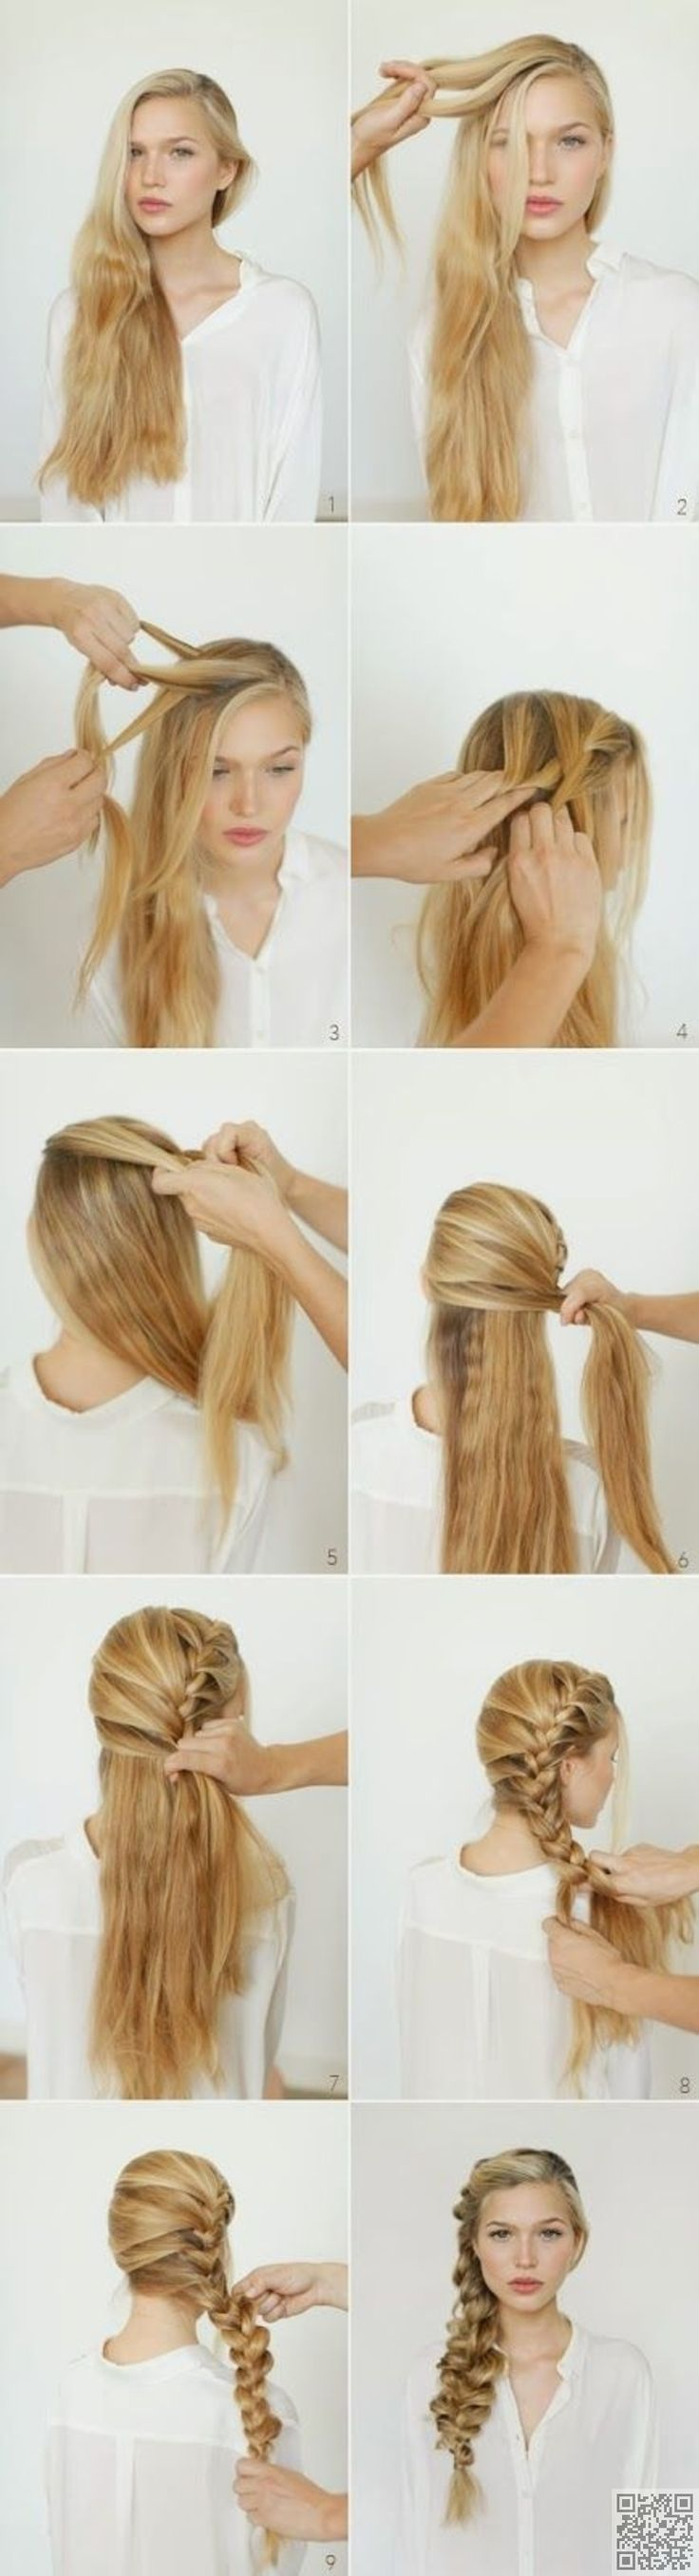 17 best Beauty images on Pinterest | Cute hairstyles, Bridal ...